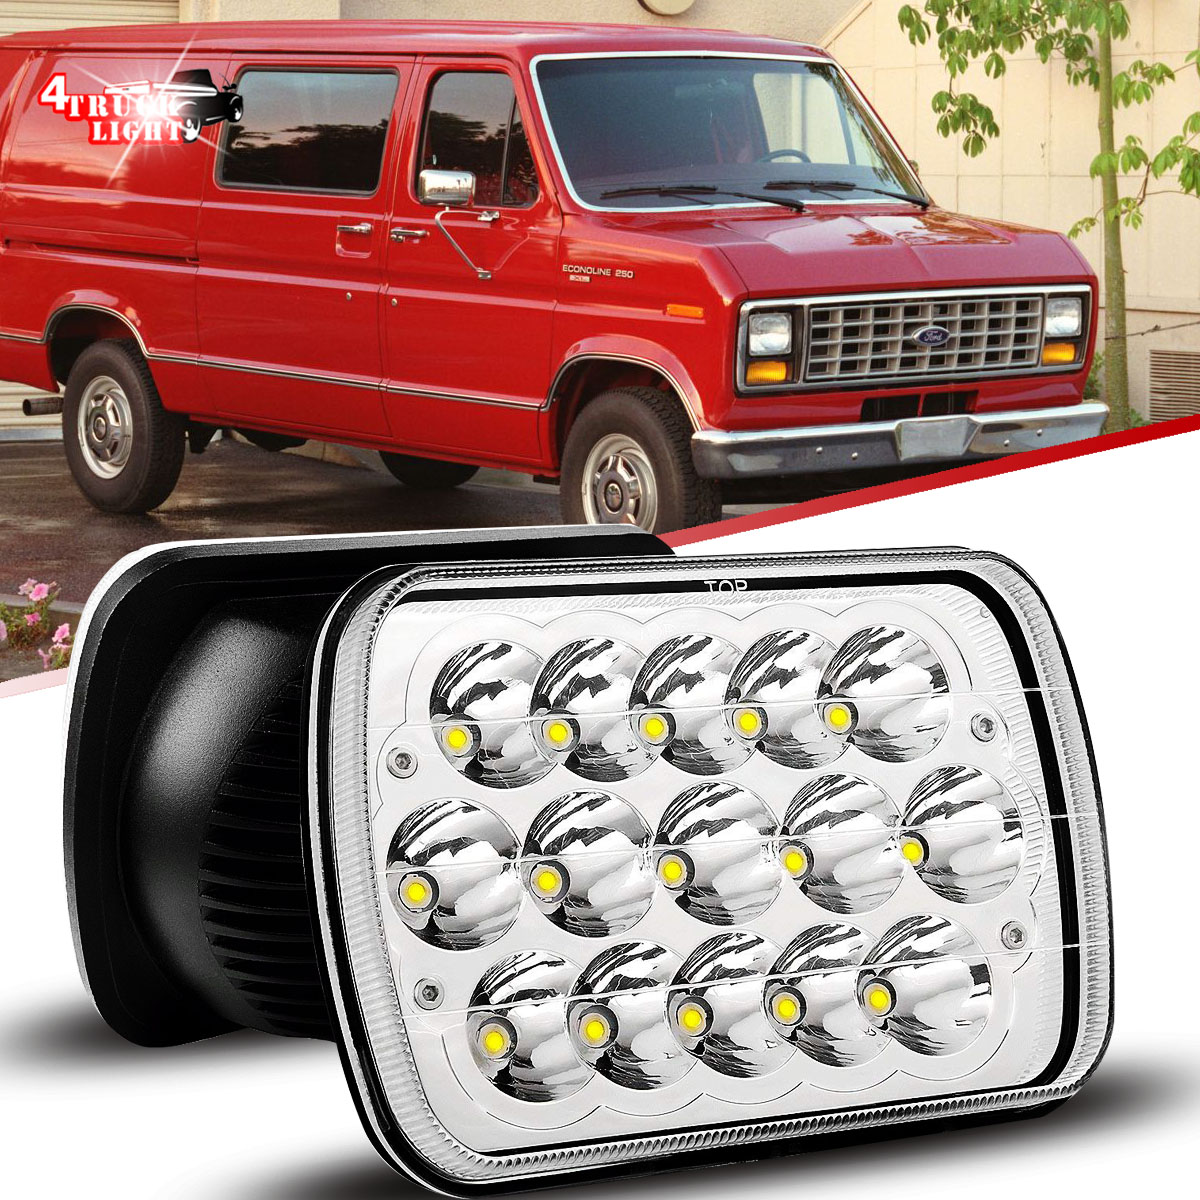 hight resolution of 7x6 5x7 in led headlight for ford super duty truck f550 f600 f650 f700 f750 2b1